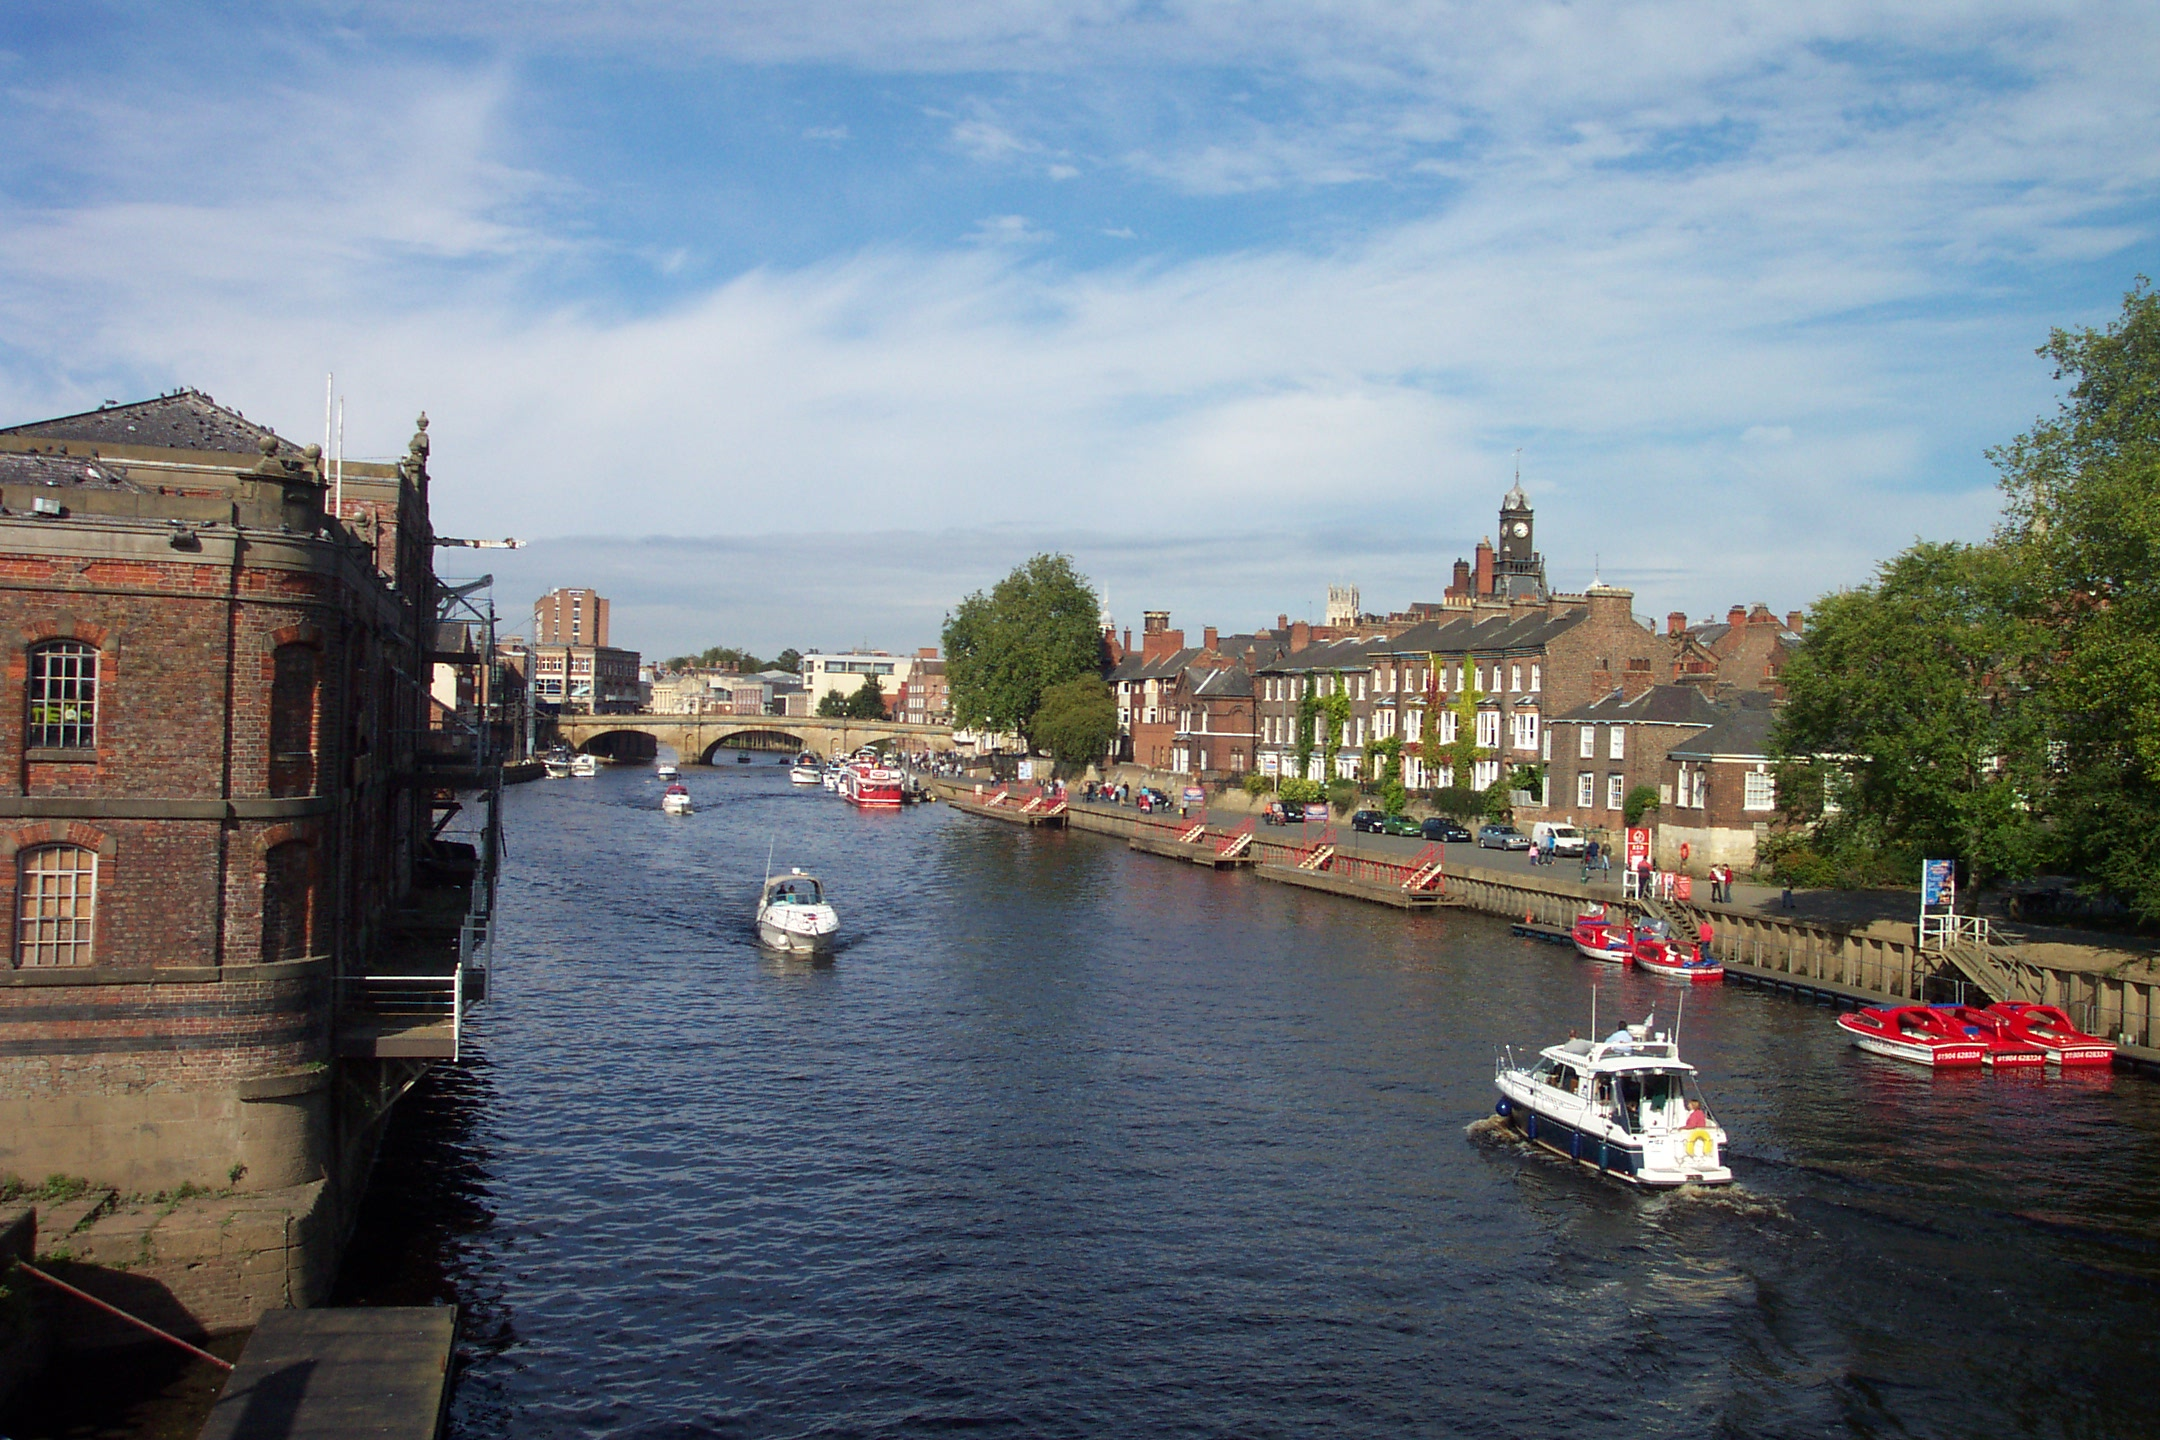 River_Ouse_in_York.JPG